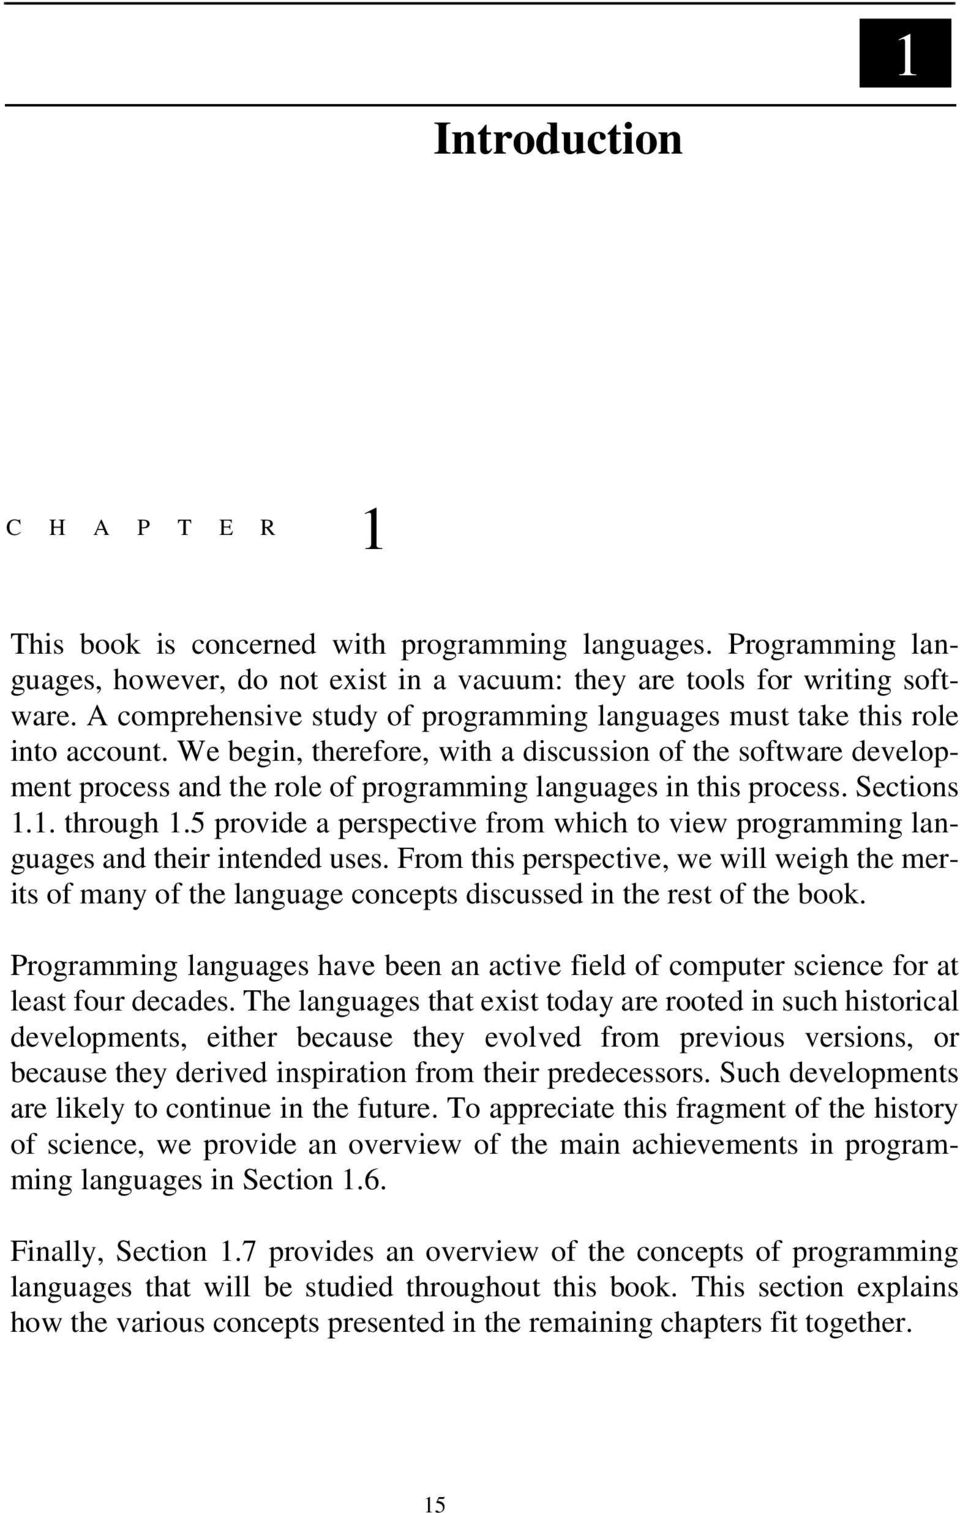 We begin, therefore, with a discussion of the software development process and the role of programming languages in this process. Sections 1.1. through 1.